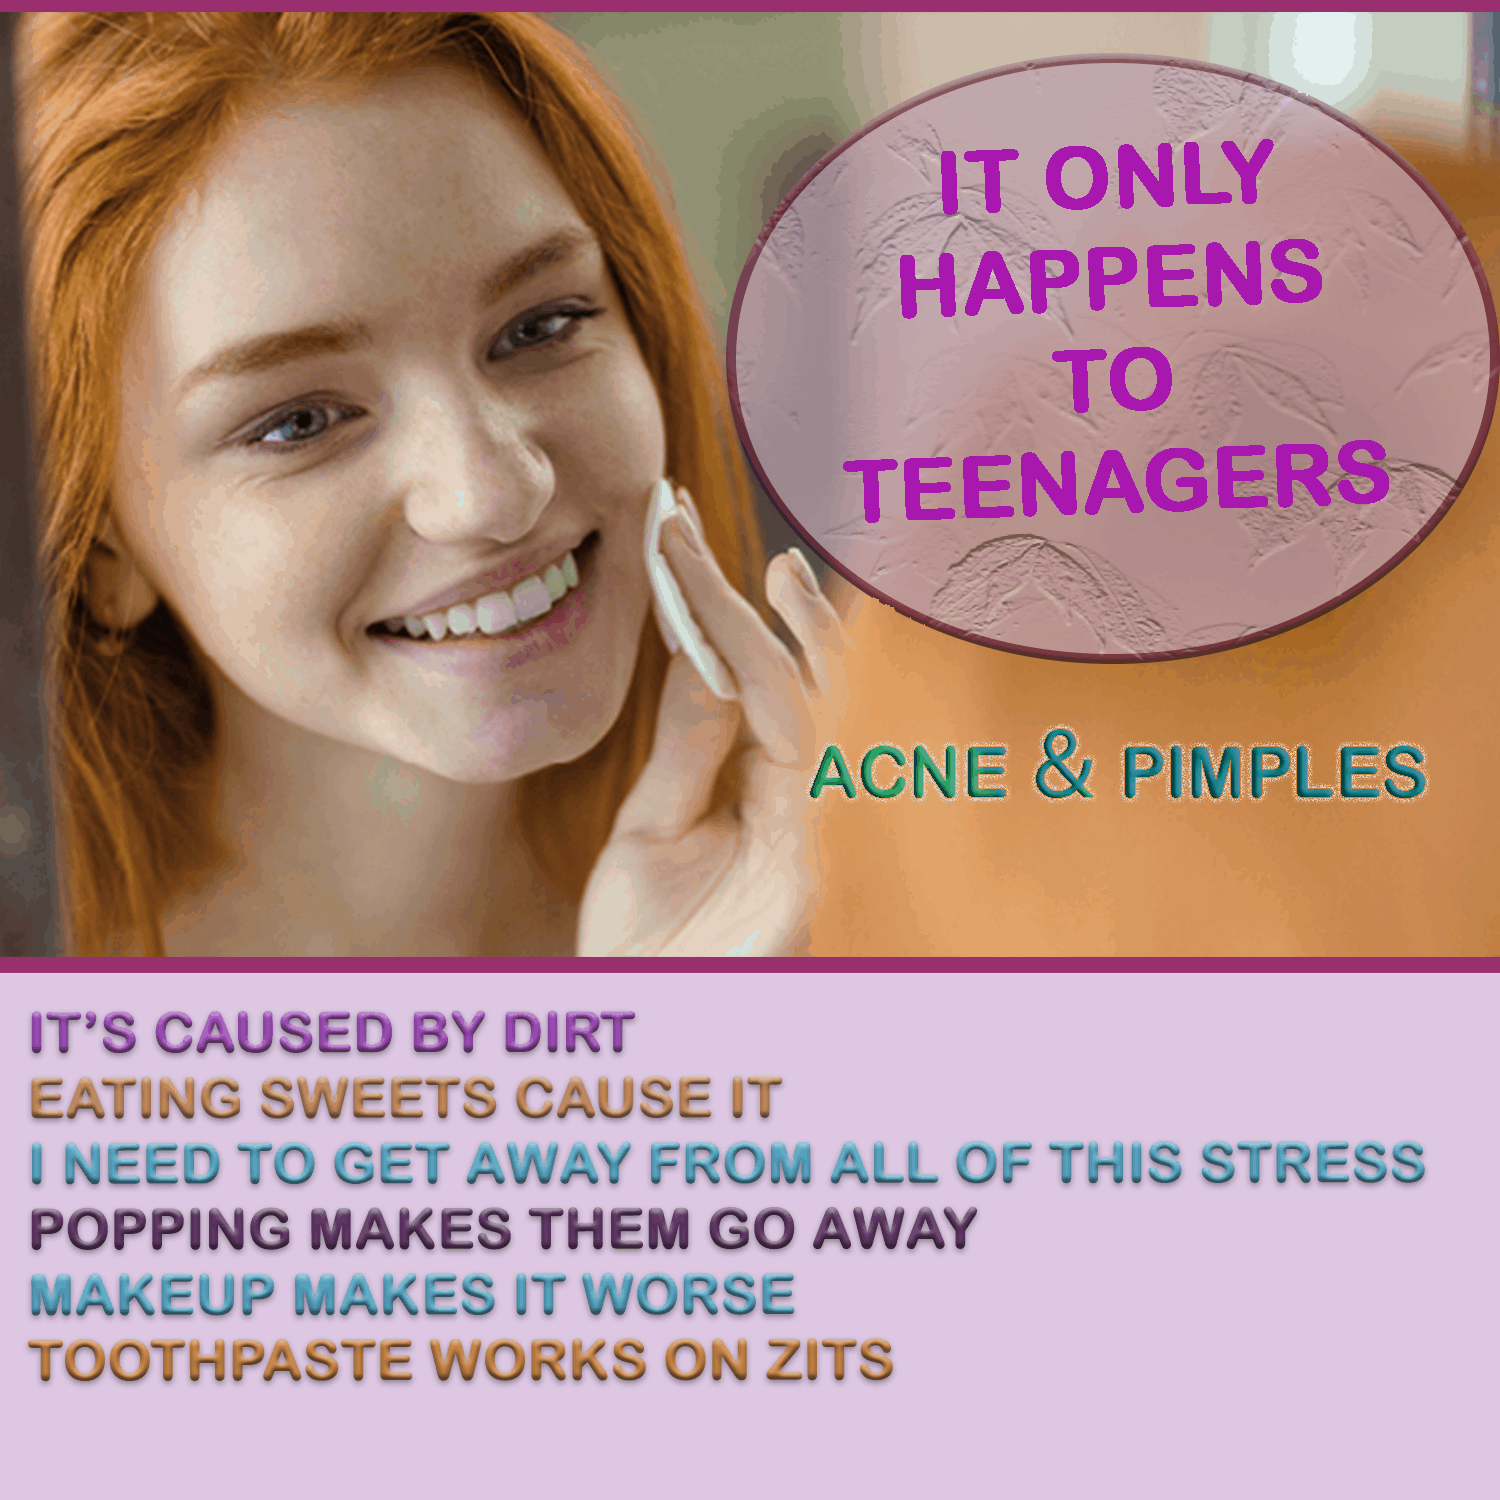 ACNE AND PIMPLES ONLY HAPPEN TO TEENAGERS. 5